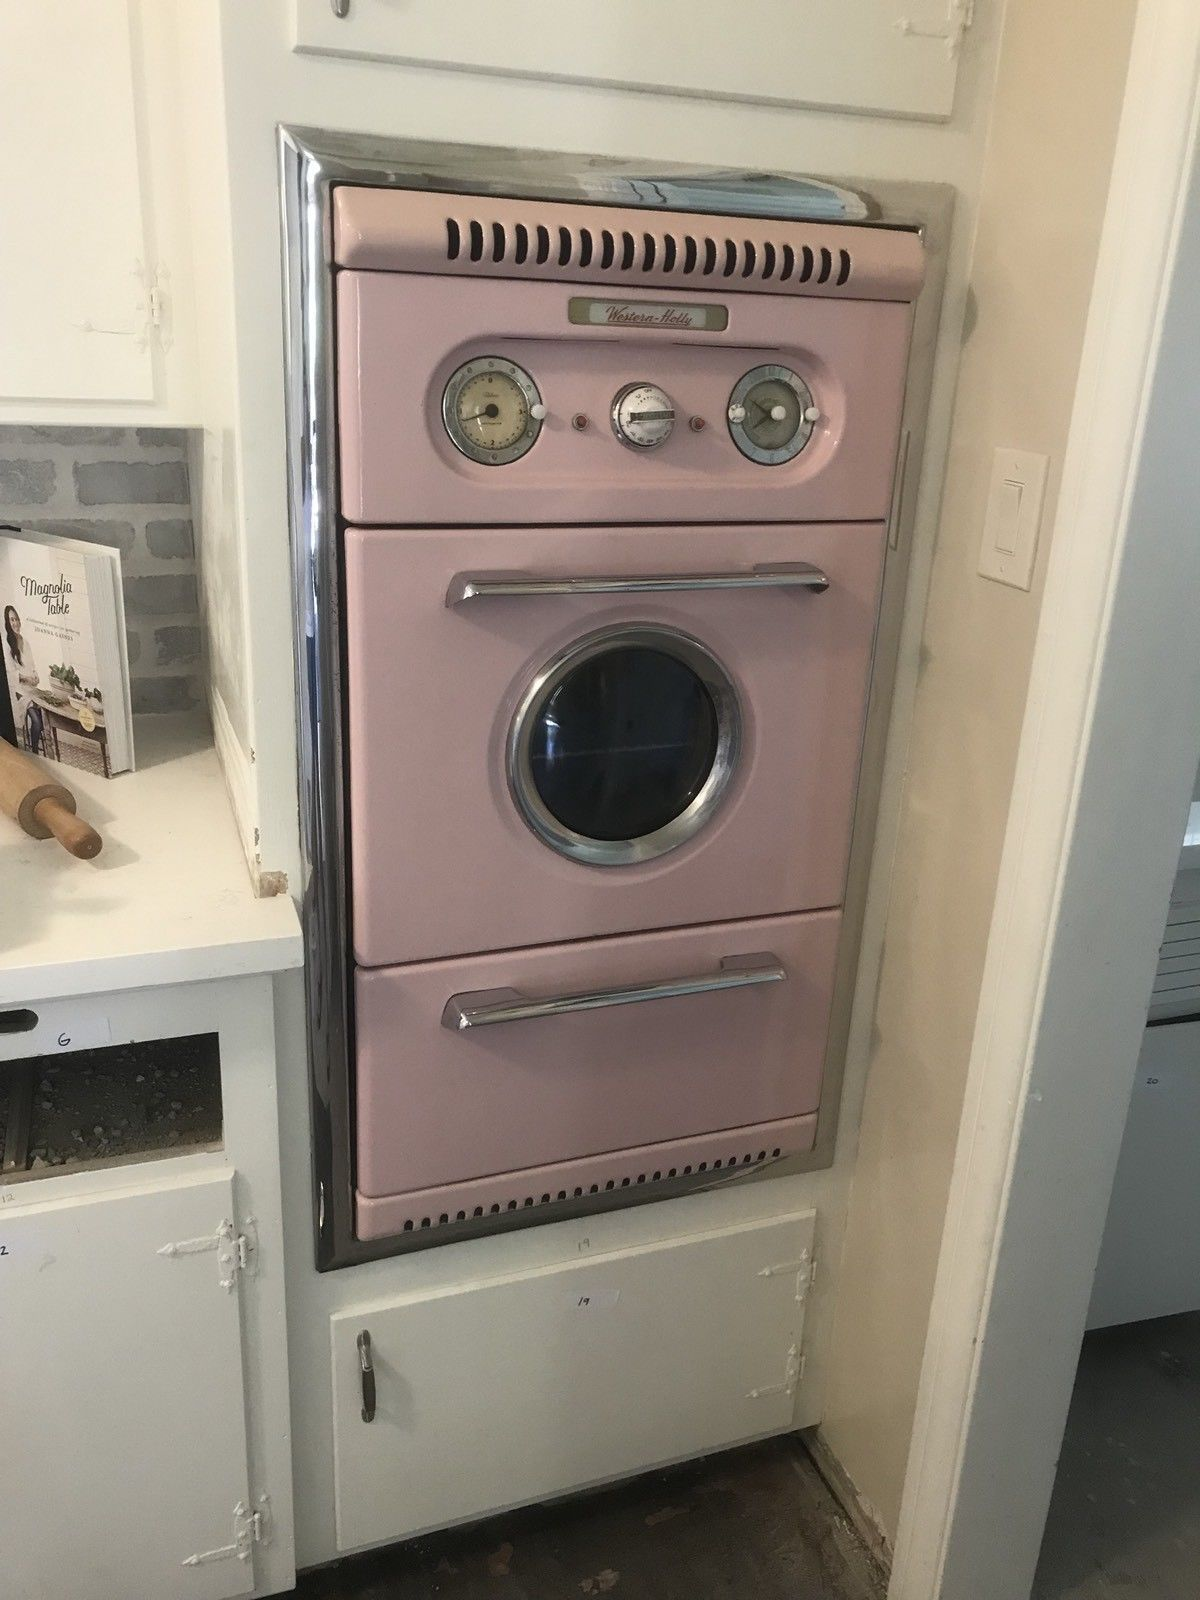 Western Holly Wall Oven Stove Pink 1950s Vintage Stove Oven Wall Oven Combination Wall Oven